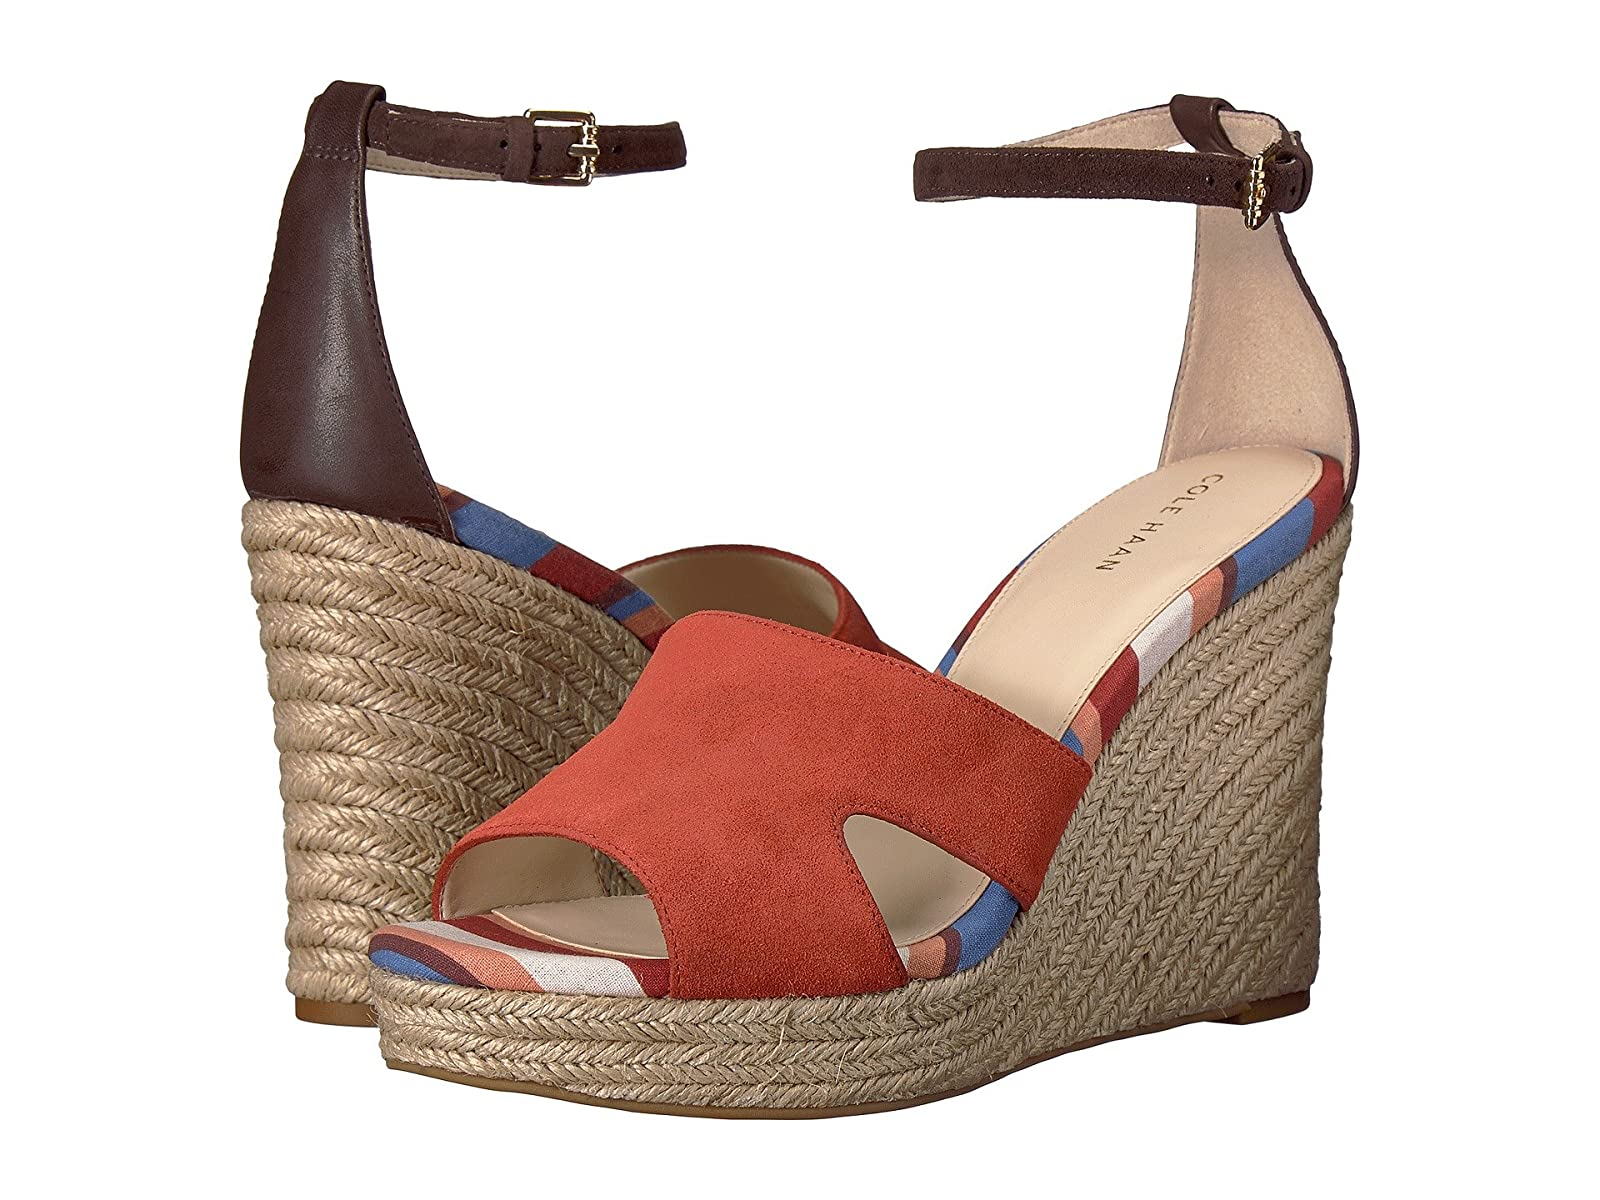 Cole Haan Giselle High Espadrille WedgeCheap and distinctive eye-catching shoes